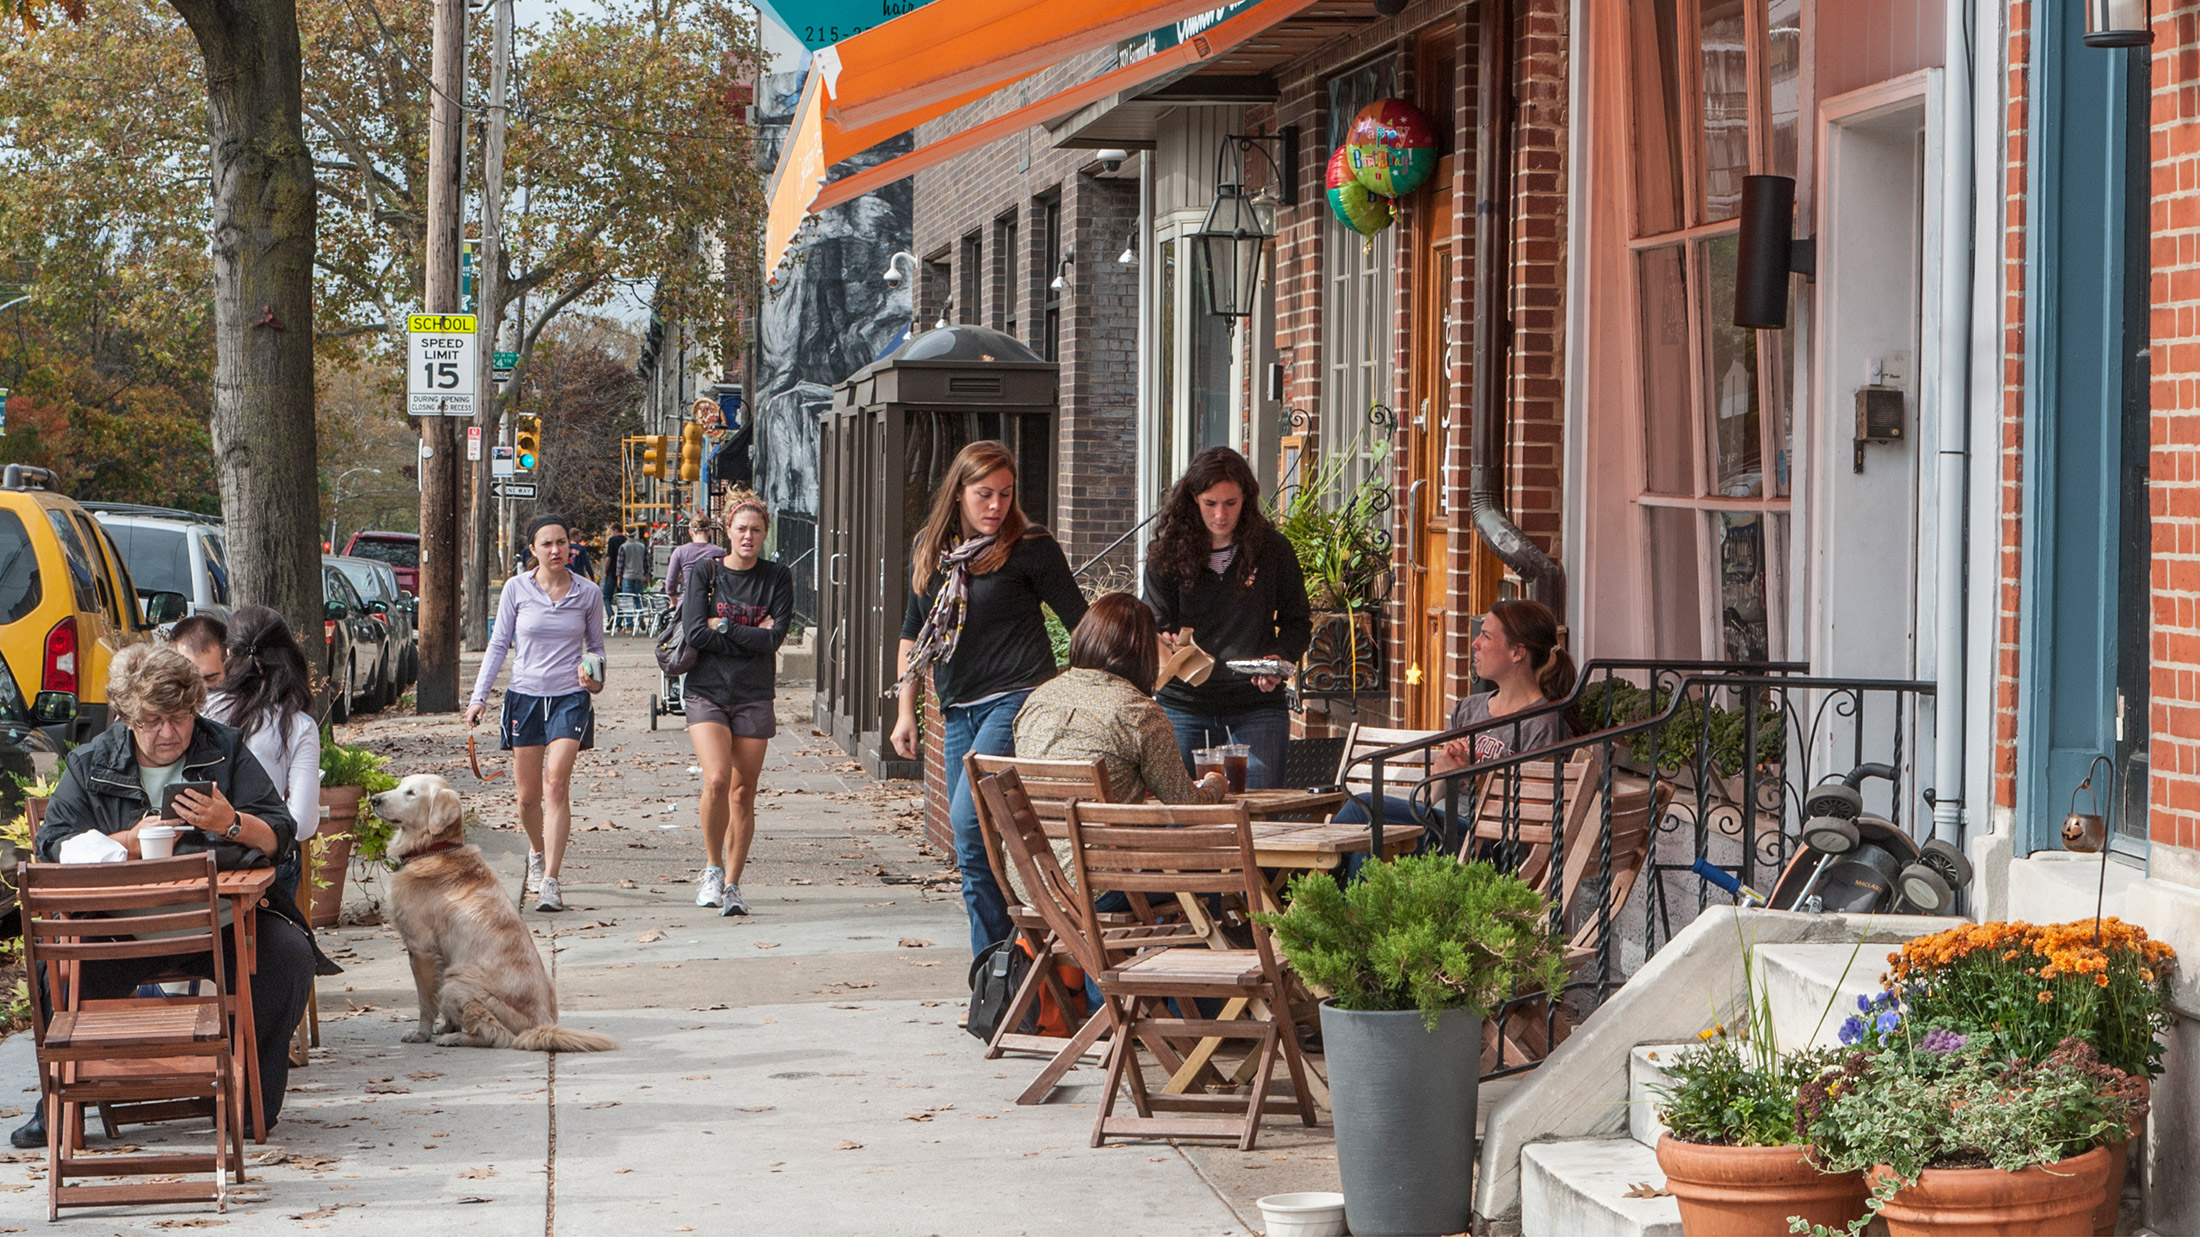 People walking and dining outside on a street in Fairmount